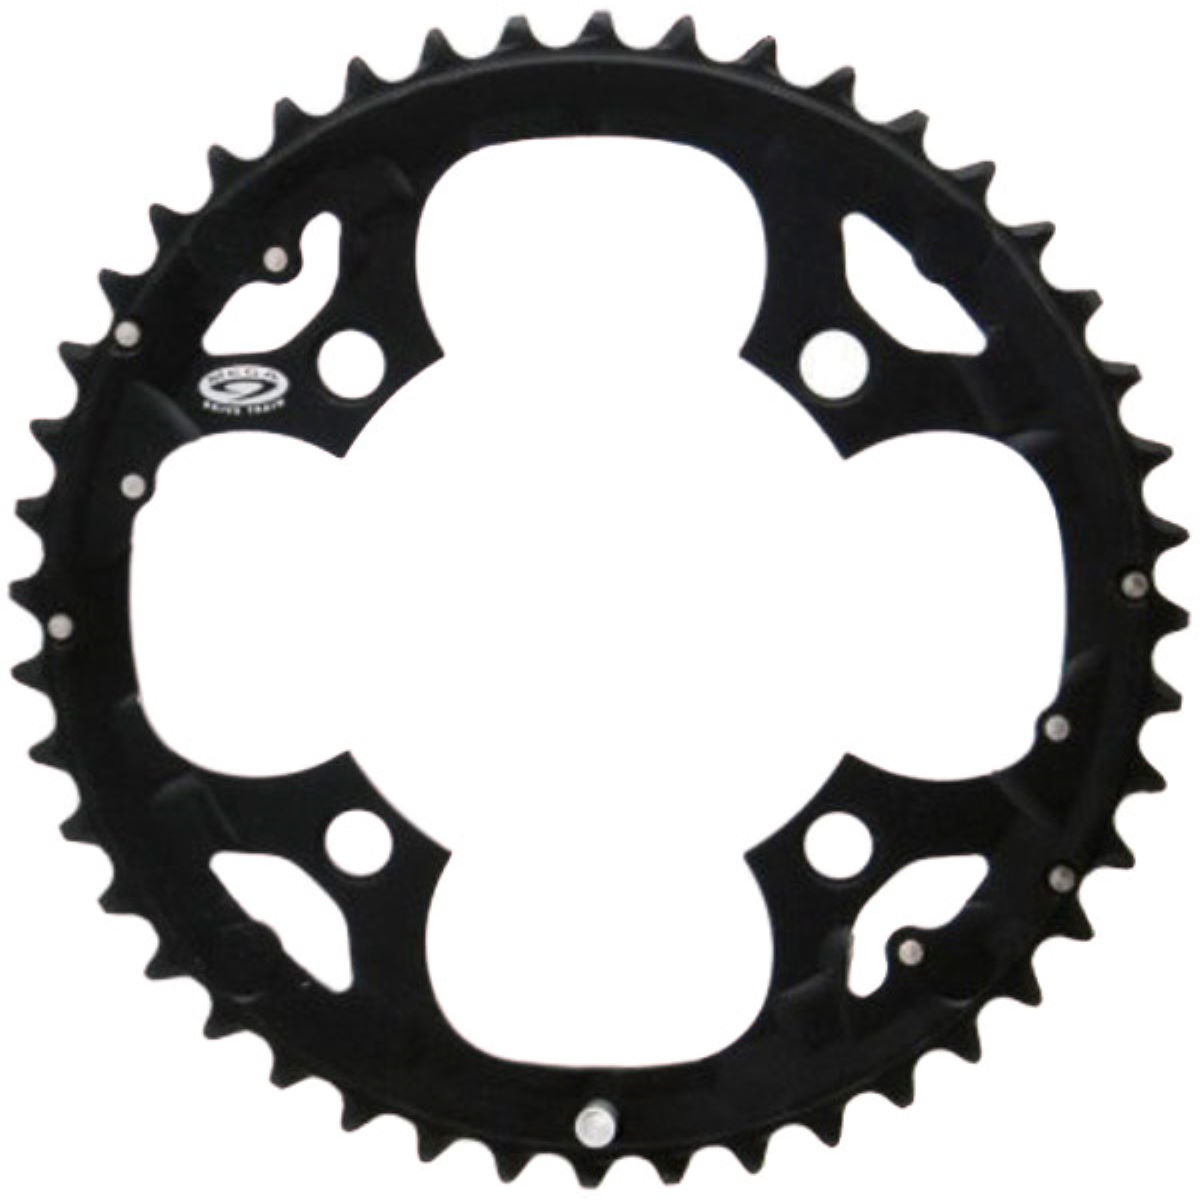 Shimano Deore Fcm590 9 Speed Triple Chainrings - 36t 9 Speed Black